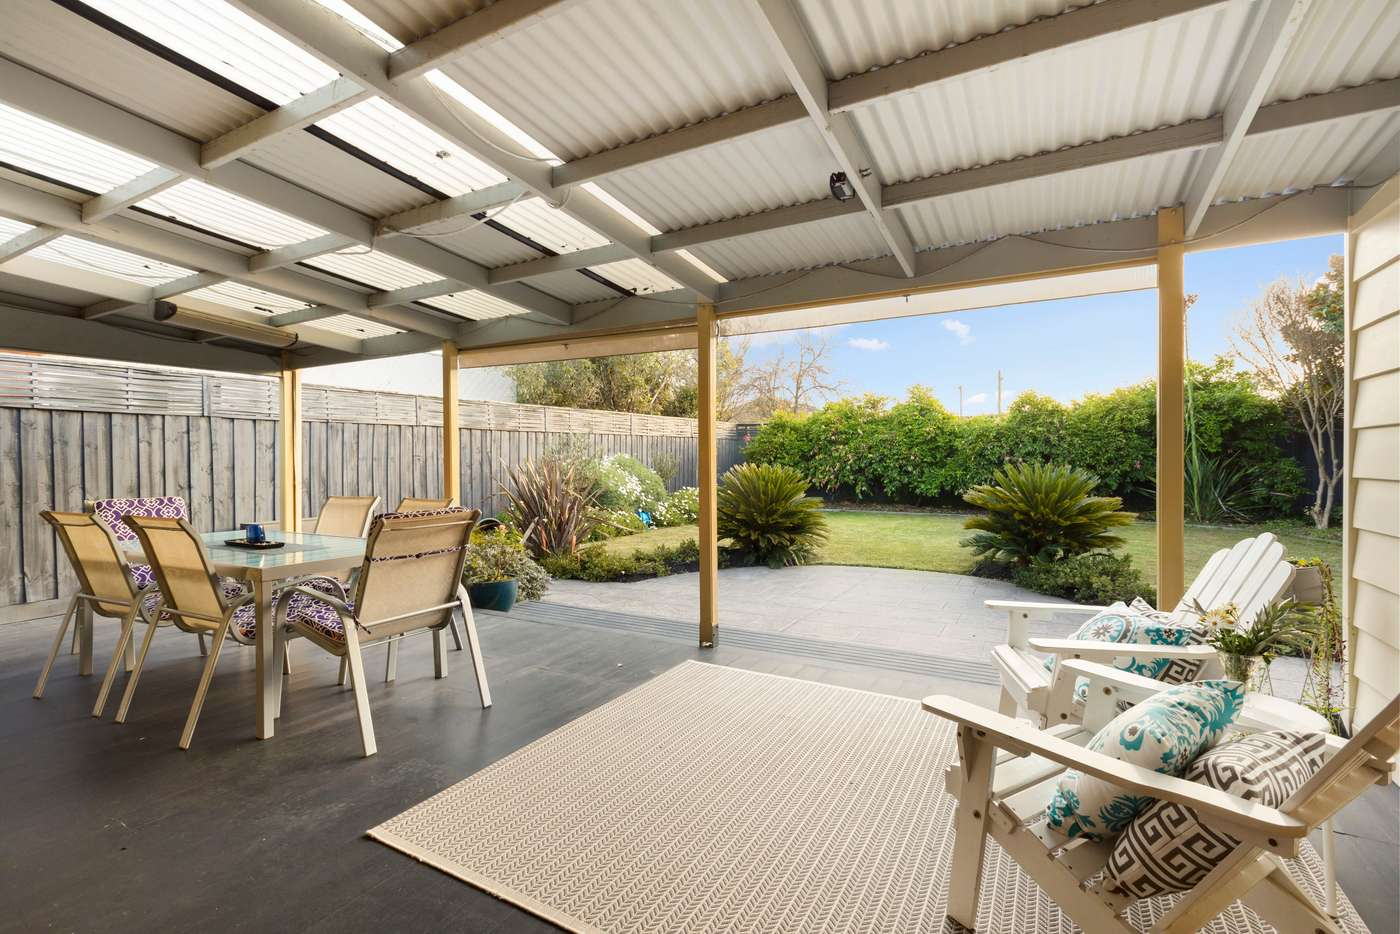 Fifth view of Homely house listing, 5 Delos Street, Oakleigh South VIC 3167